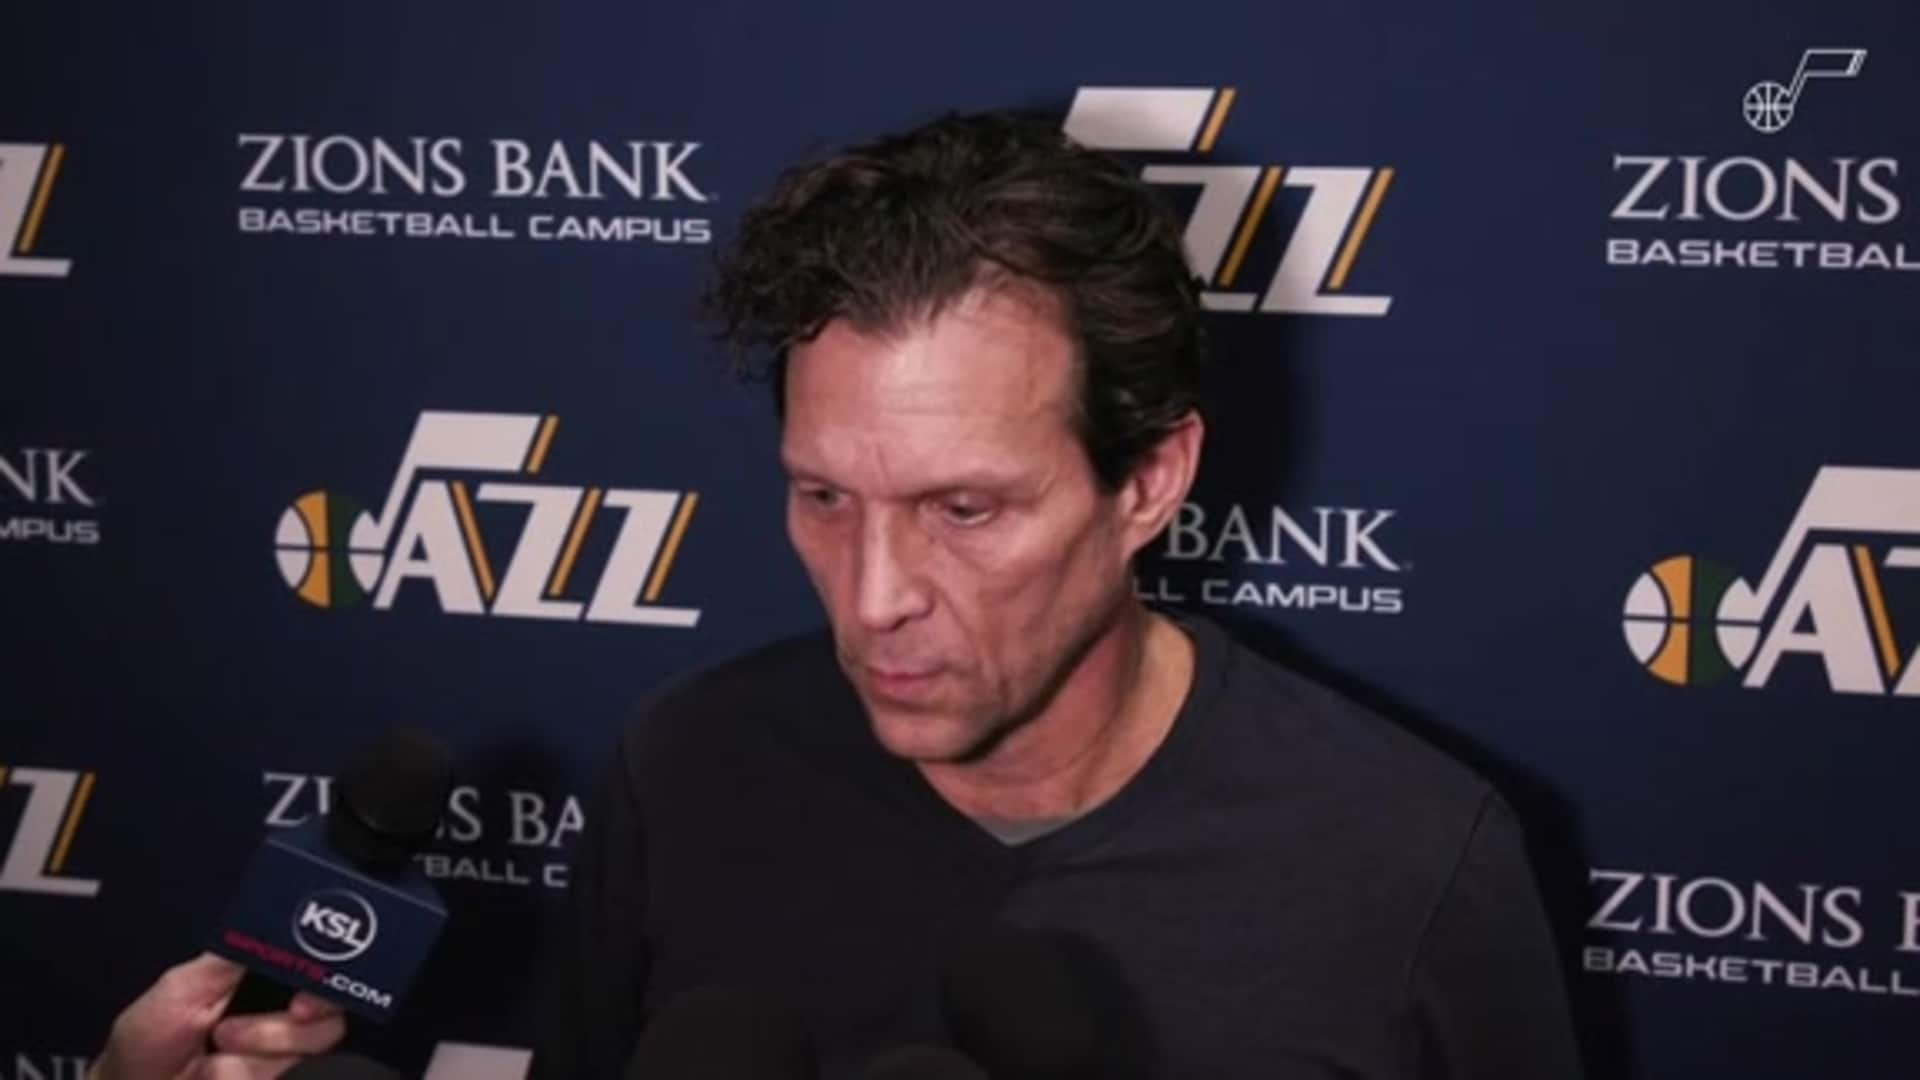 Shootaround Interviews: Coach Quin Snyder—'I think everybody is grieving'